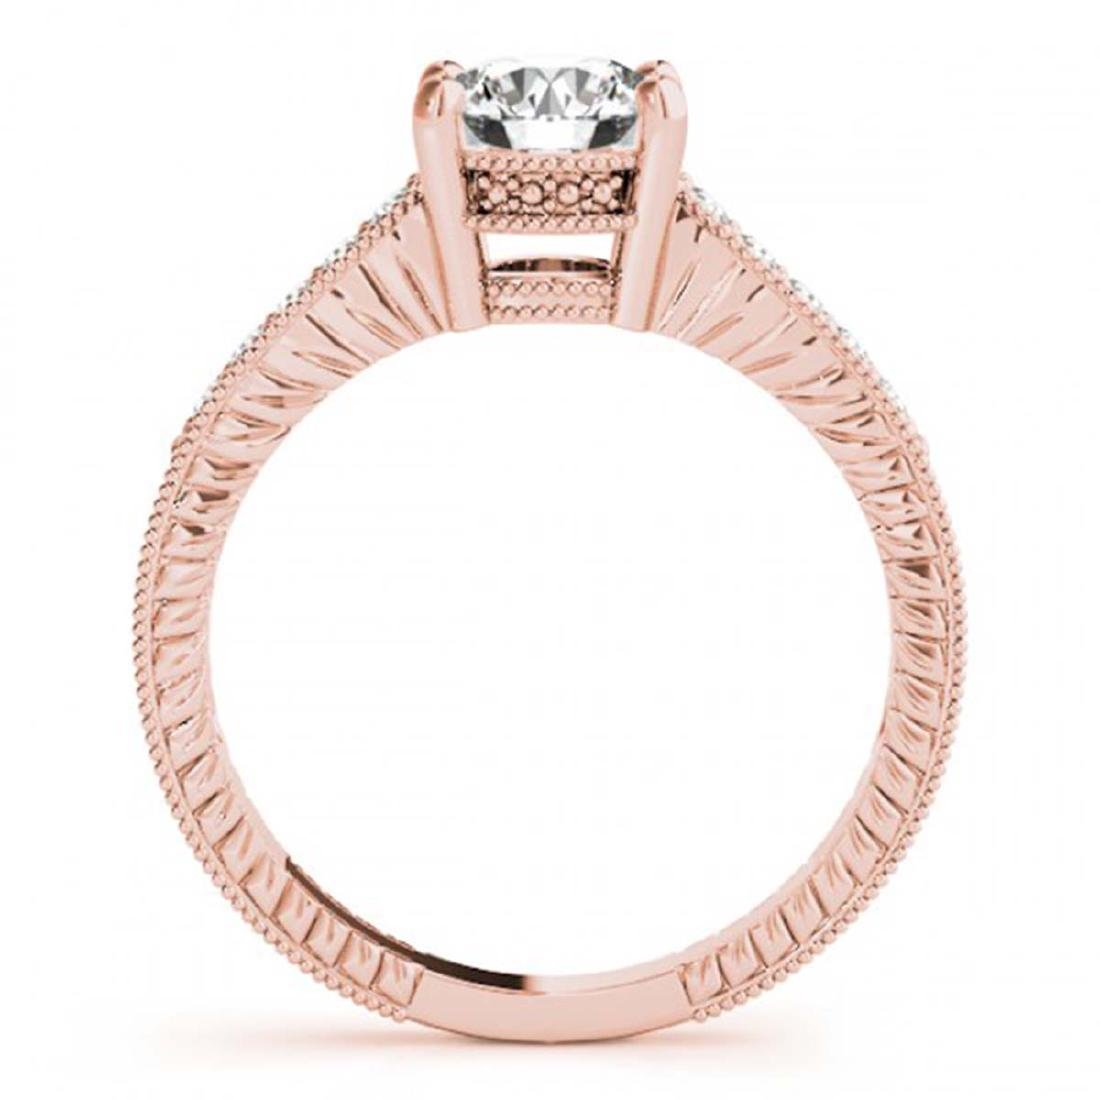 1.75 ctw VS/SI Diamond Ring 18K Rose Gold - REF-502A2V - 2